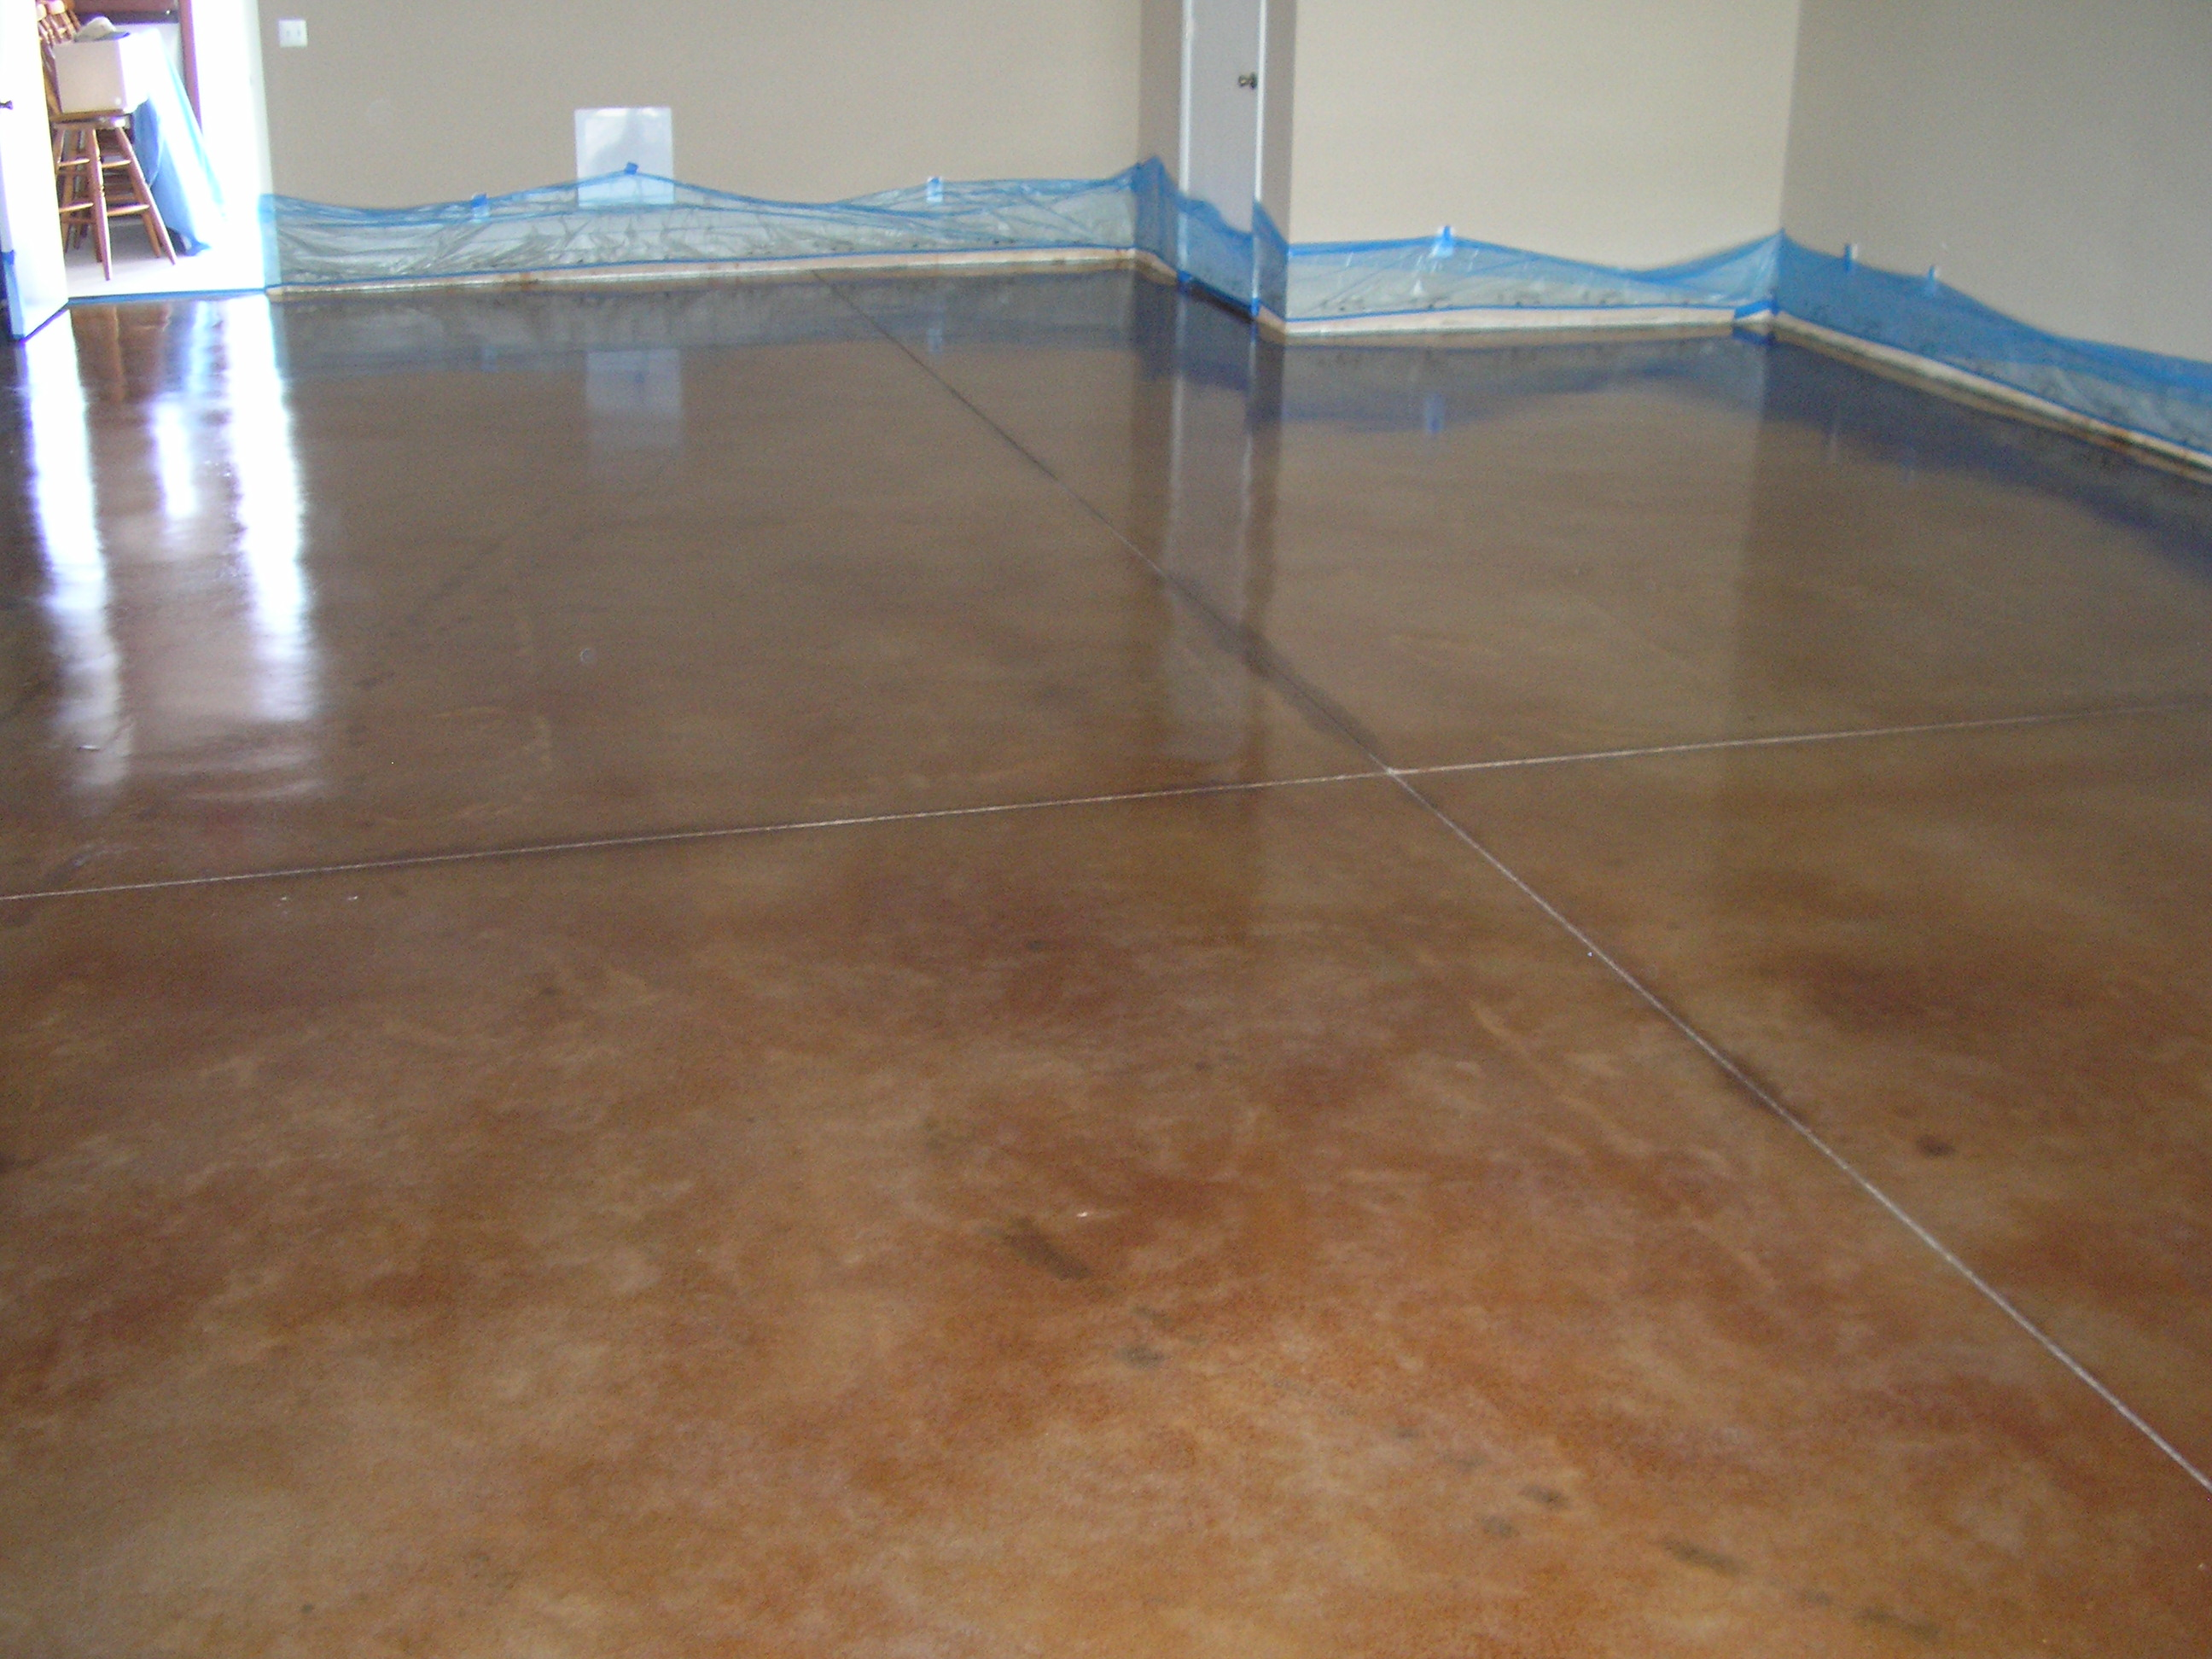 1000 images about stained concrete floors on pinterest for How to care for stained concrete floors